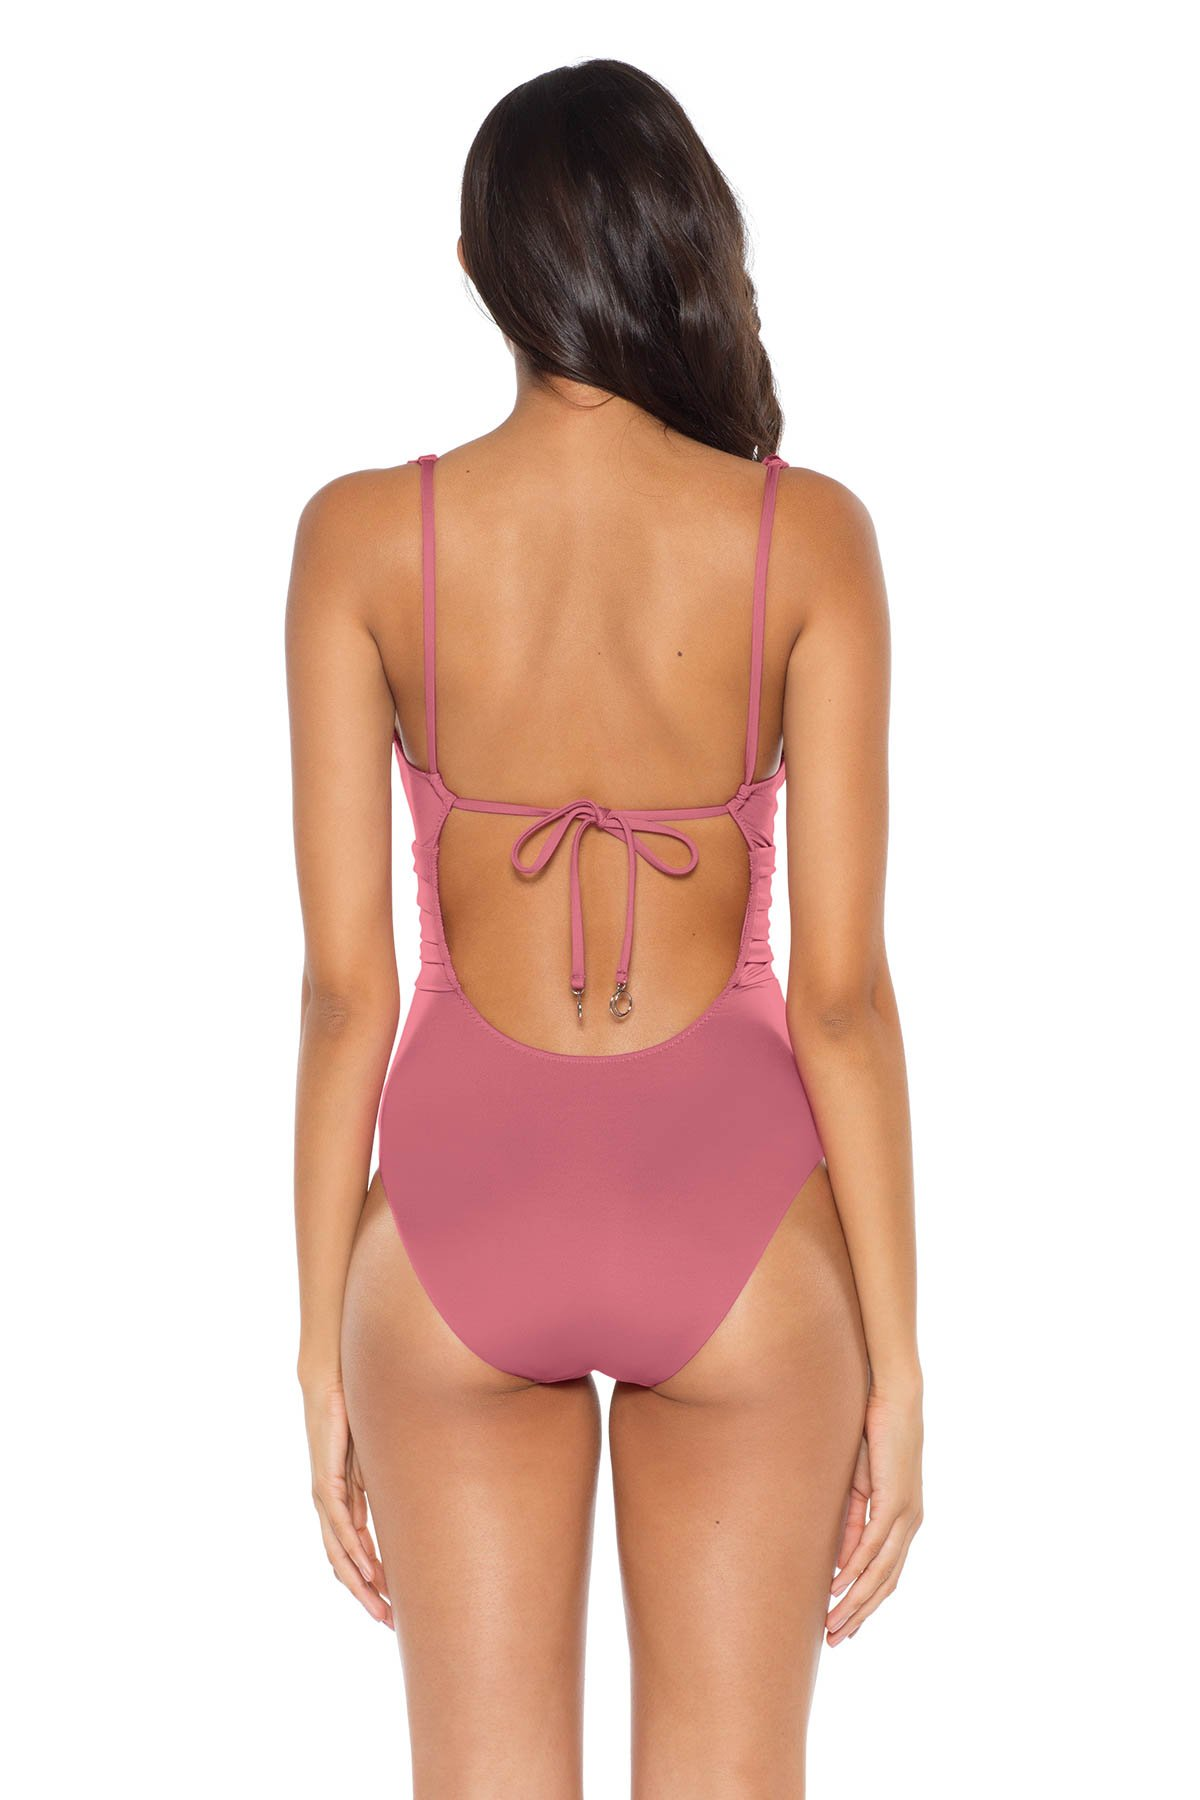 Ruffle Plunge One Piece Swimsuit - Mulberry 6